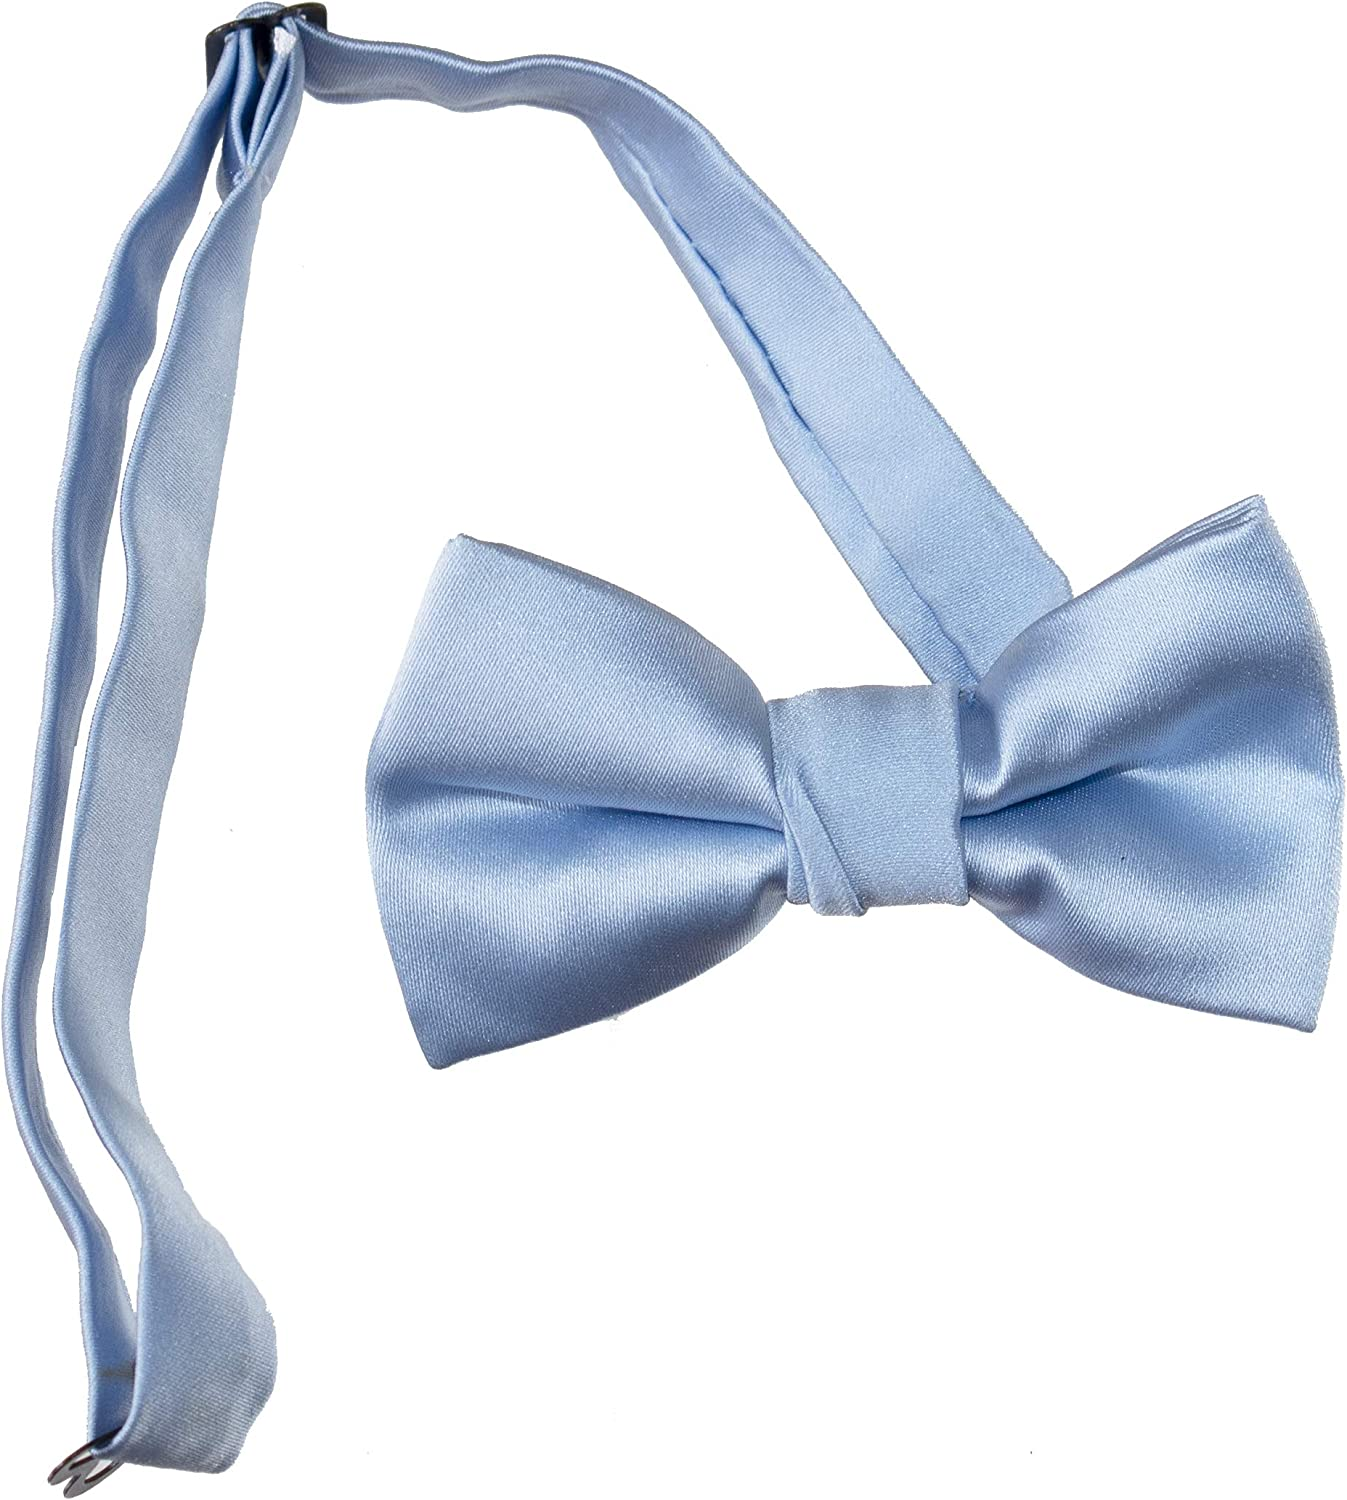 Tuxgear Mens Pre-tied Adjustable Bow Ties for Kids and Adults in Several Colors